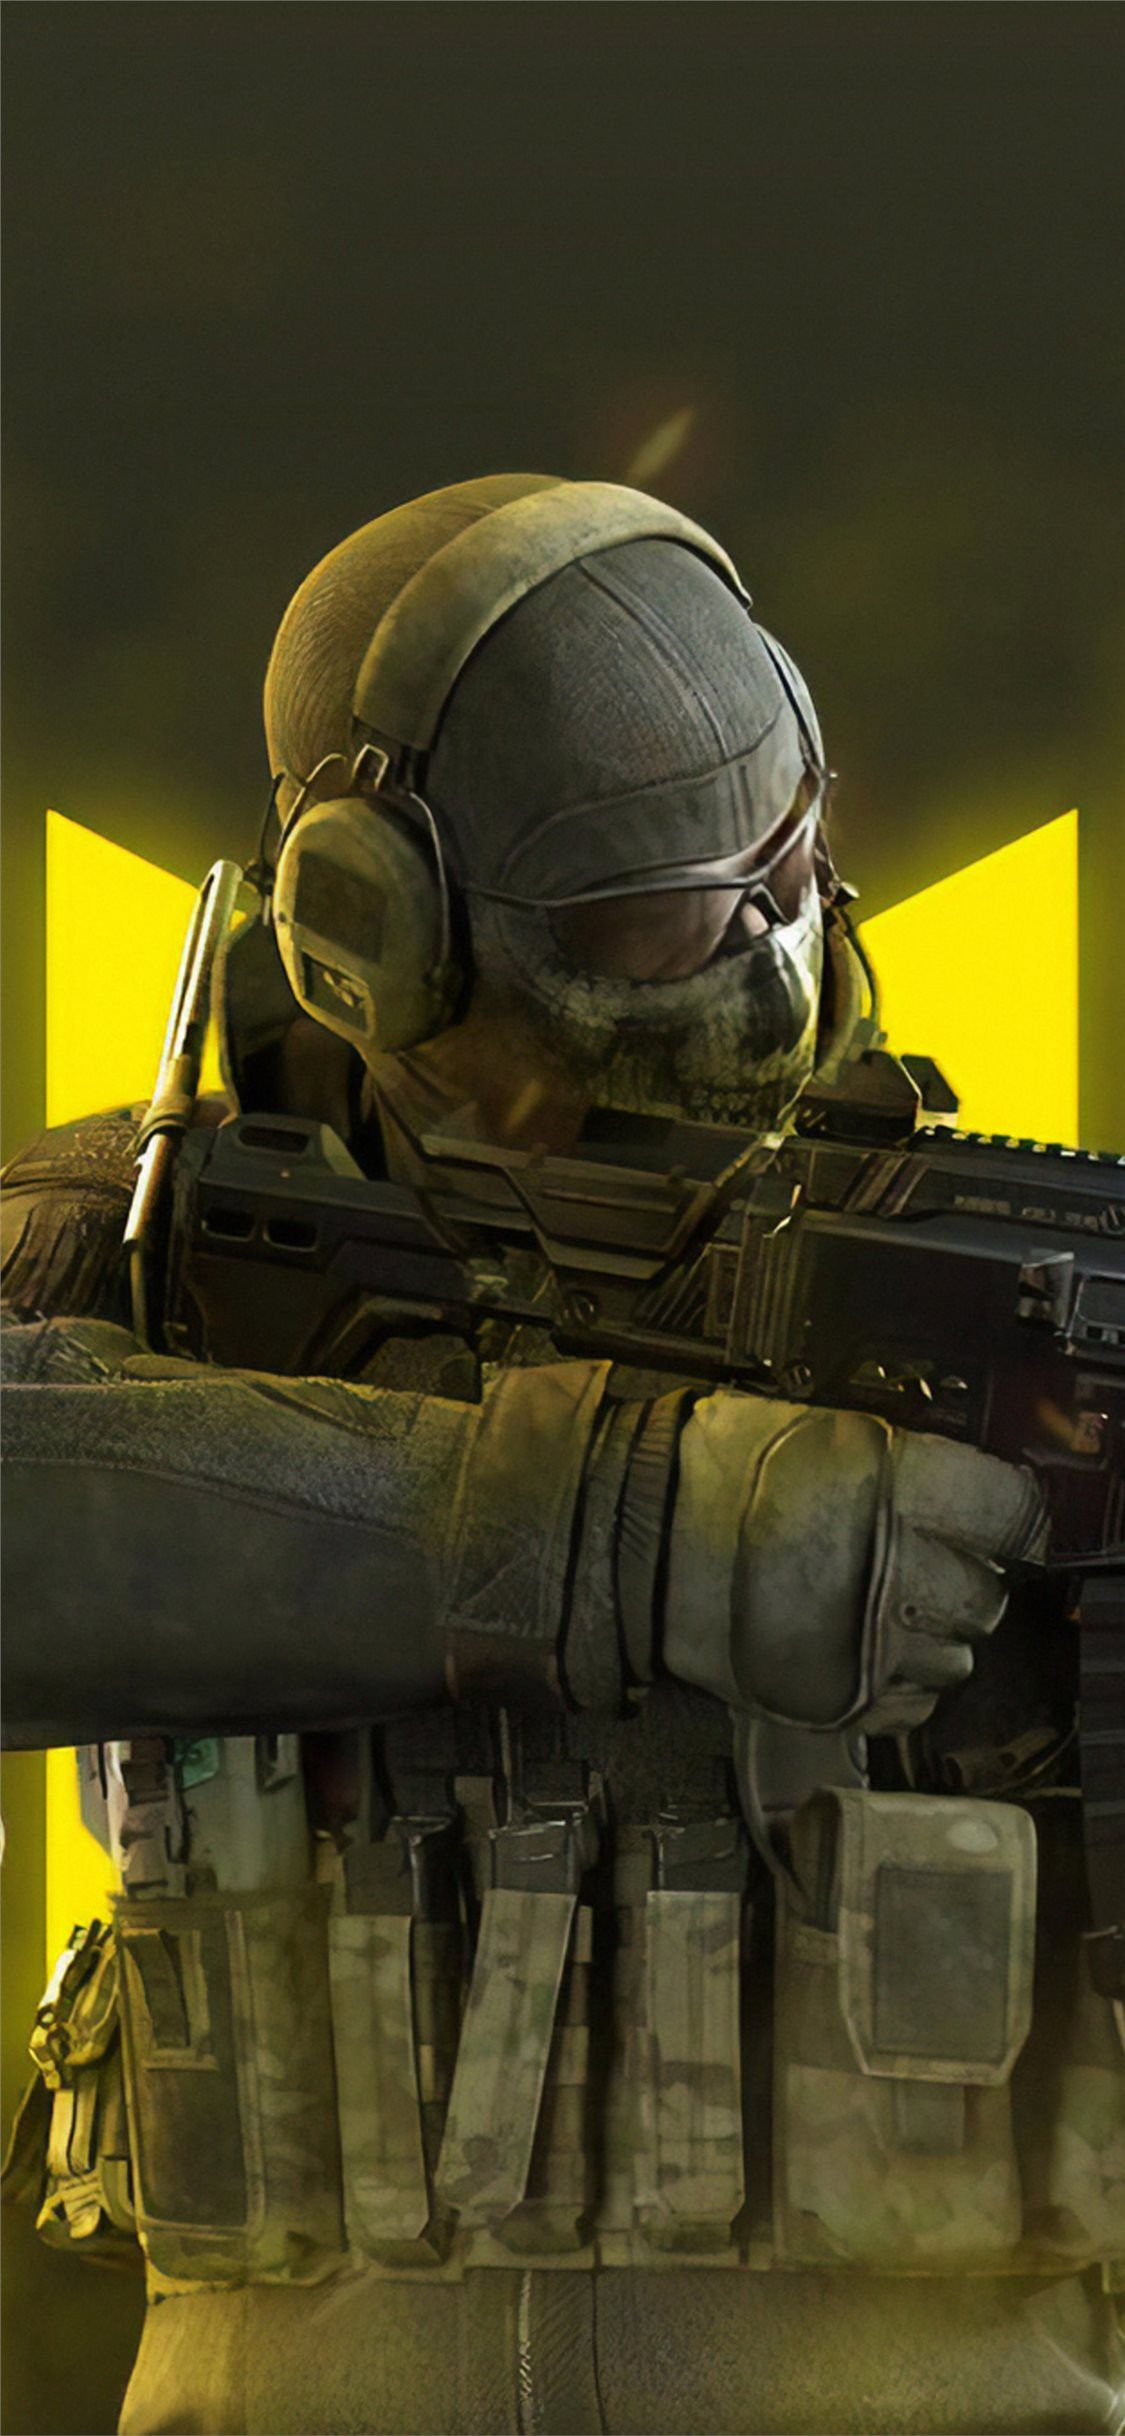 call of duty mobile 4k 2019 iPhone X Wallpapers em 2020 Tapetes 1125x2436